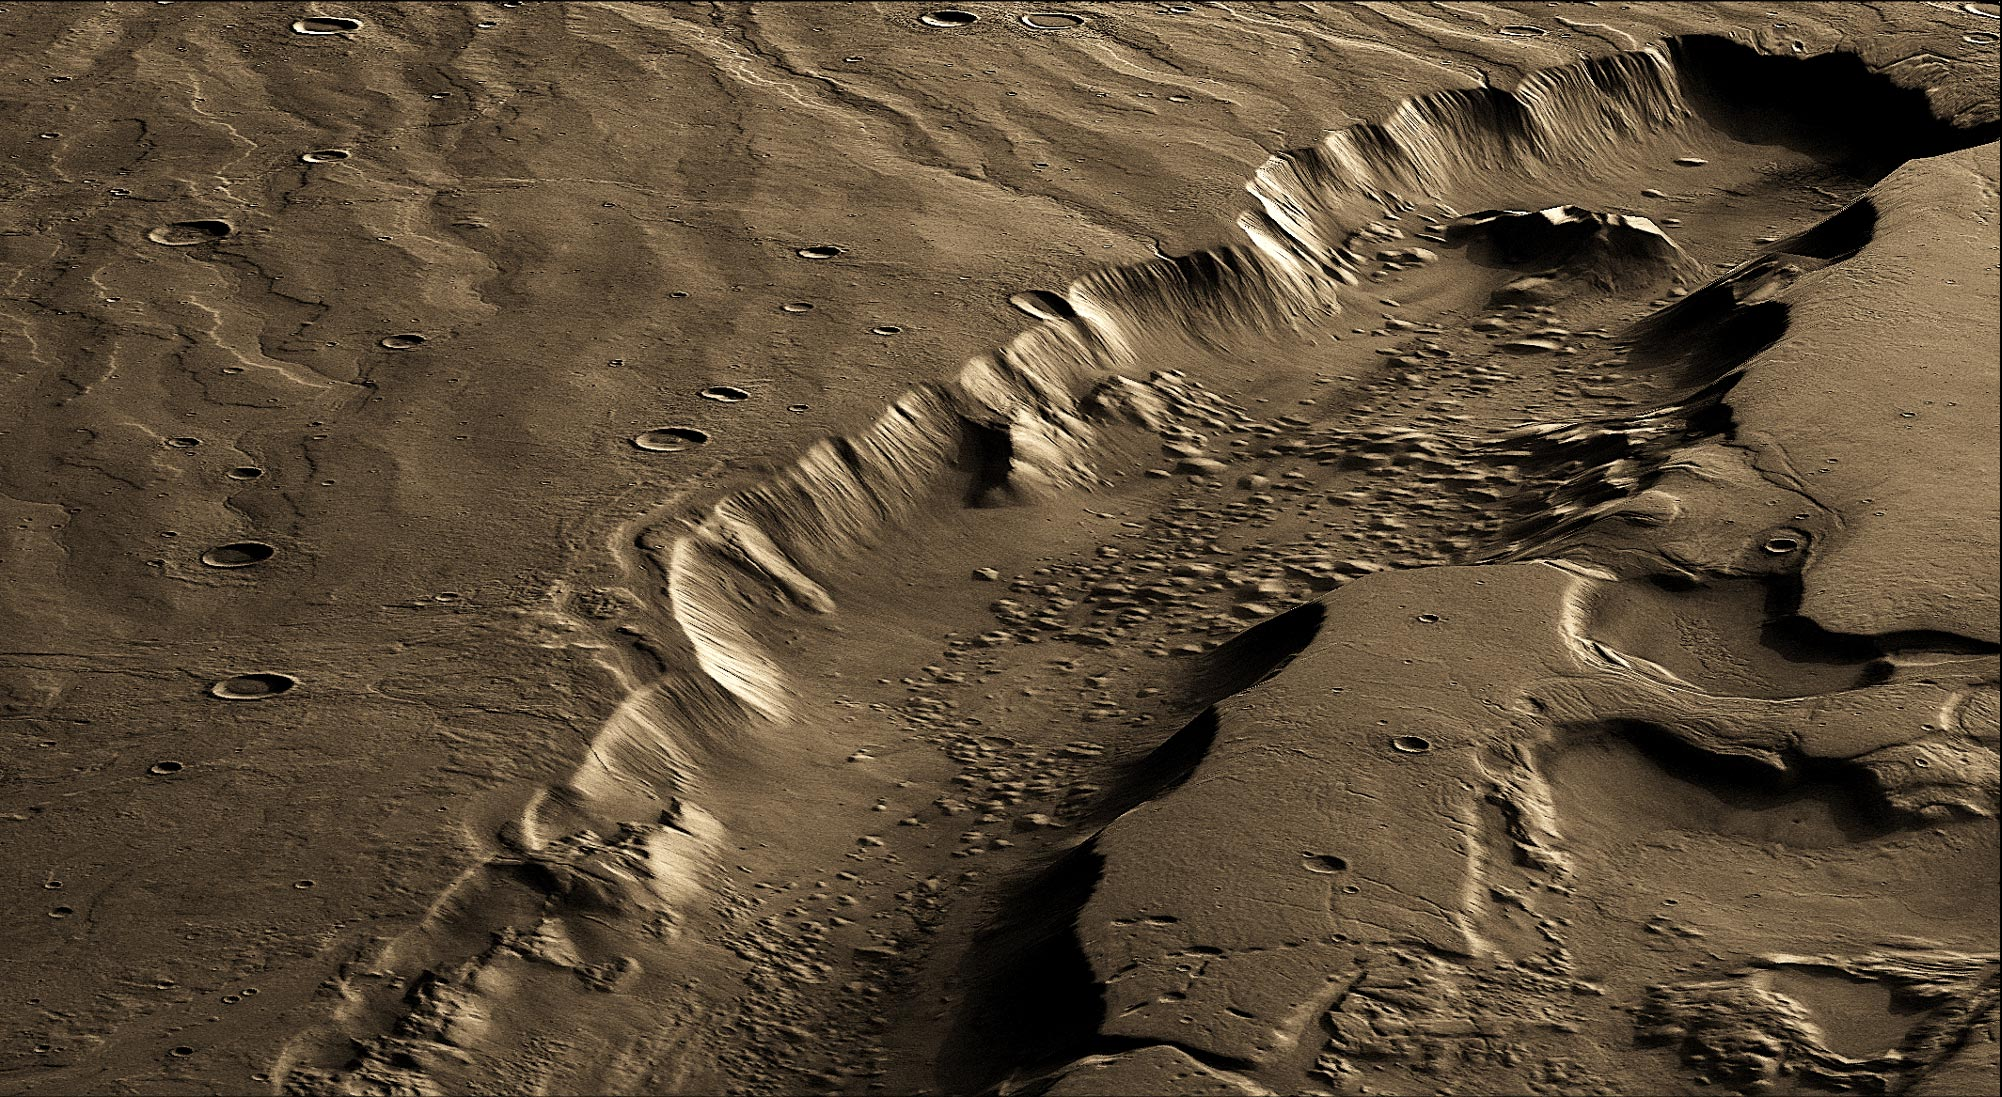 Best Region for Life on Mars Was Miles Below Surface